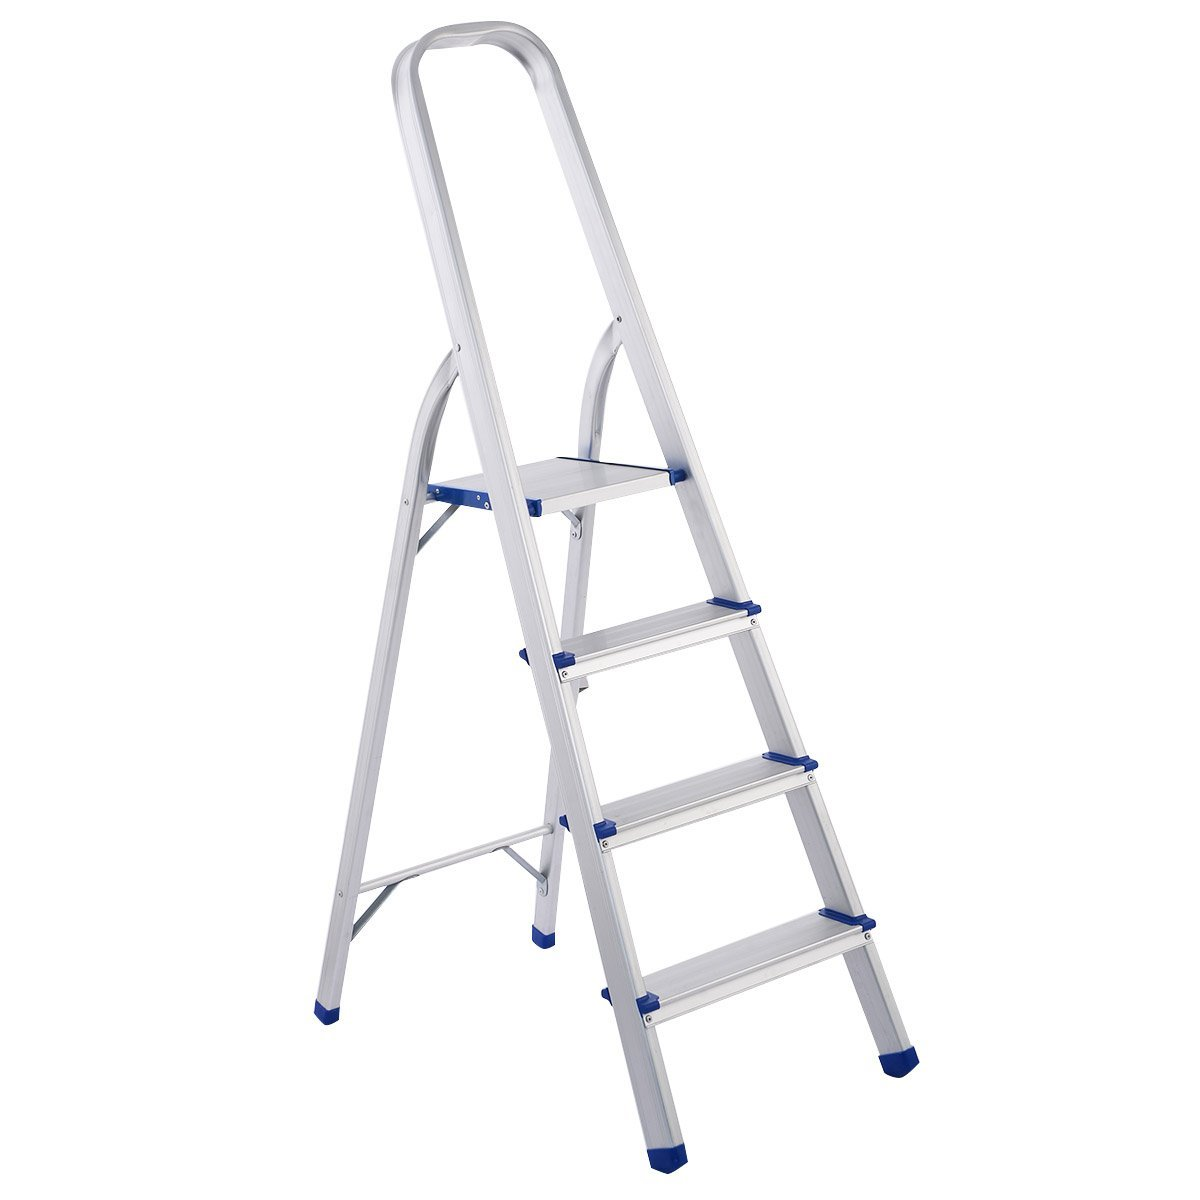 Giantex 4 Step Aluminum Foldable Non-slip Ladder 300lbs Lightweight Home Office Portable